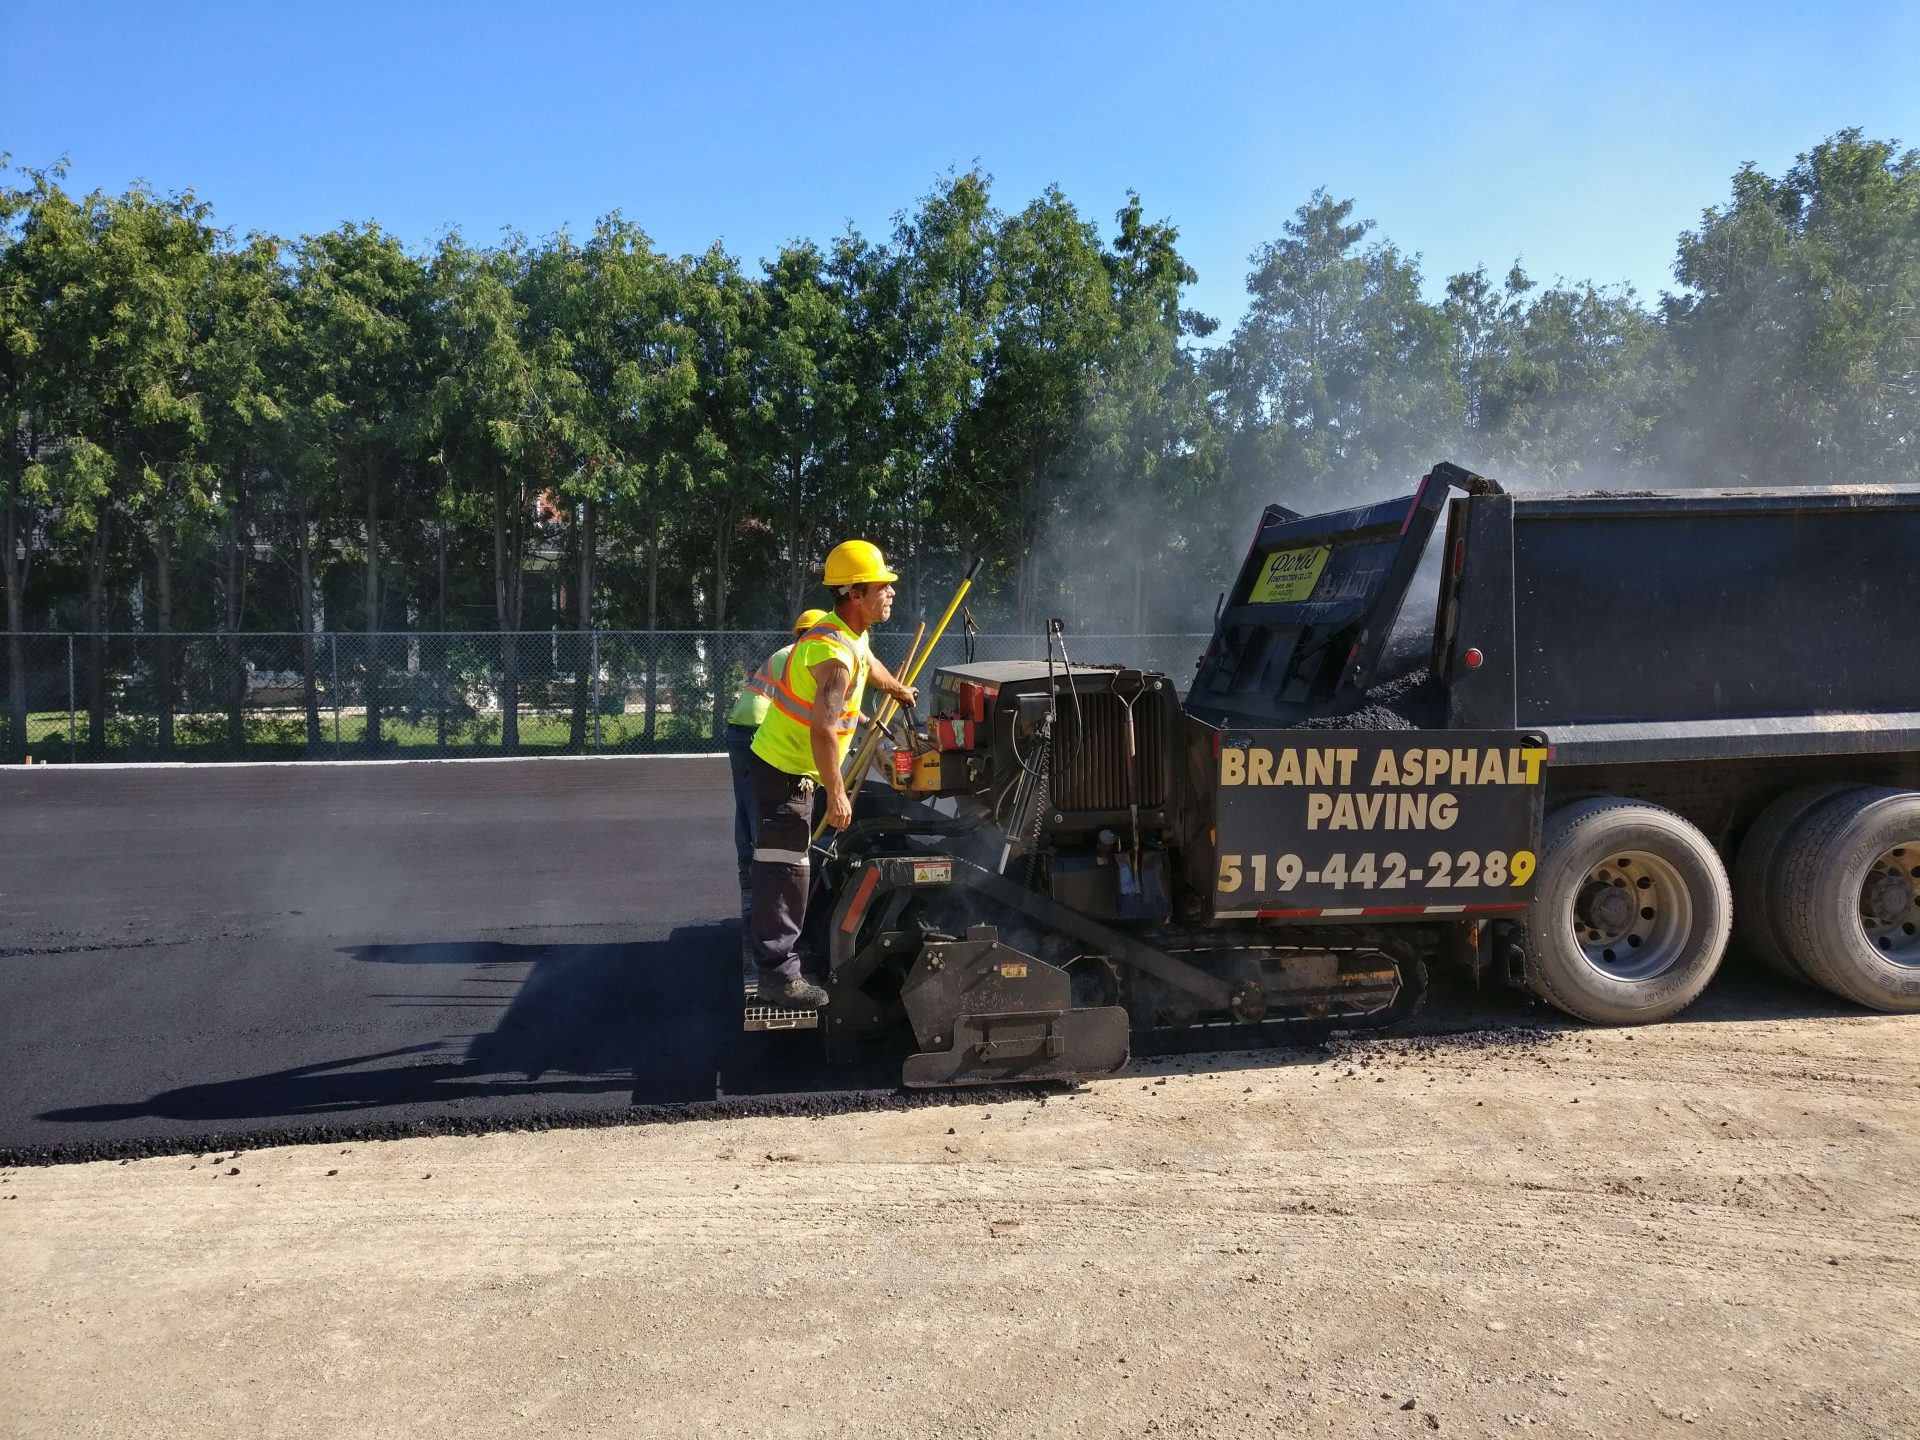 Paris Construction Pavers on asphalt truck